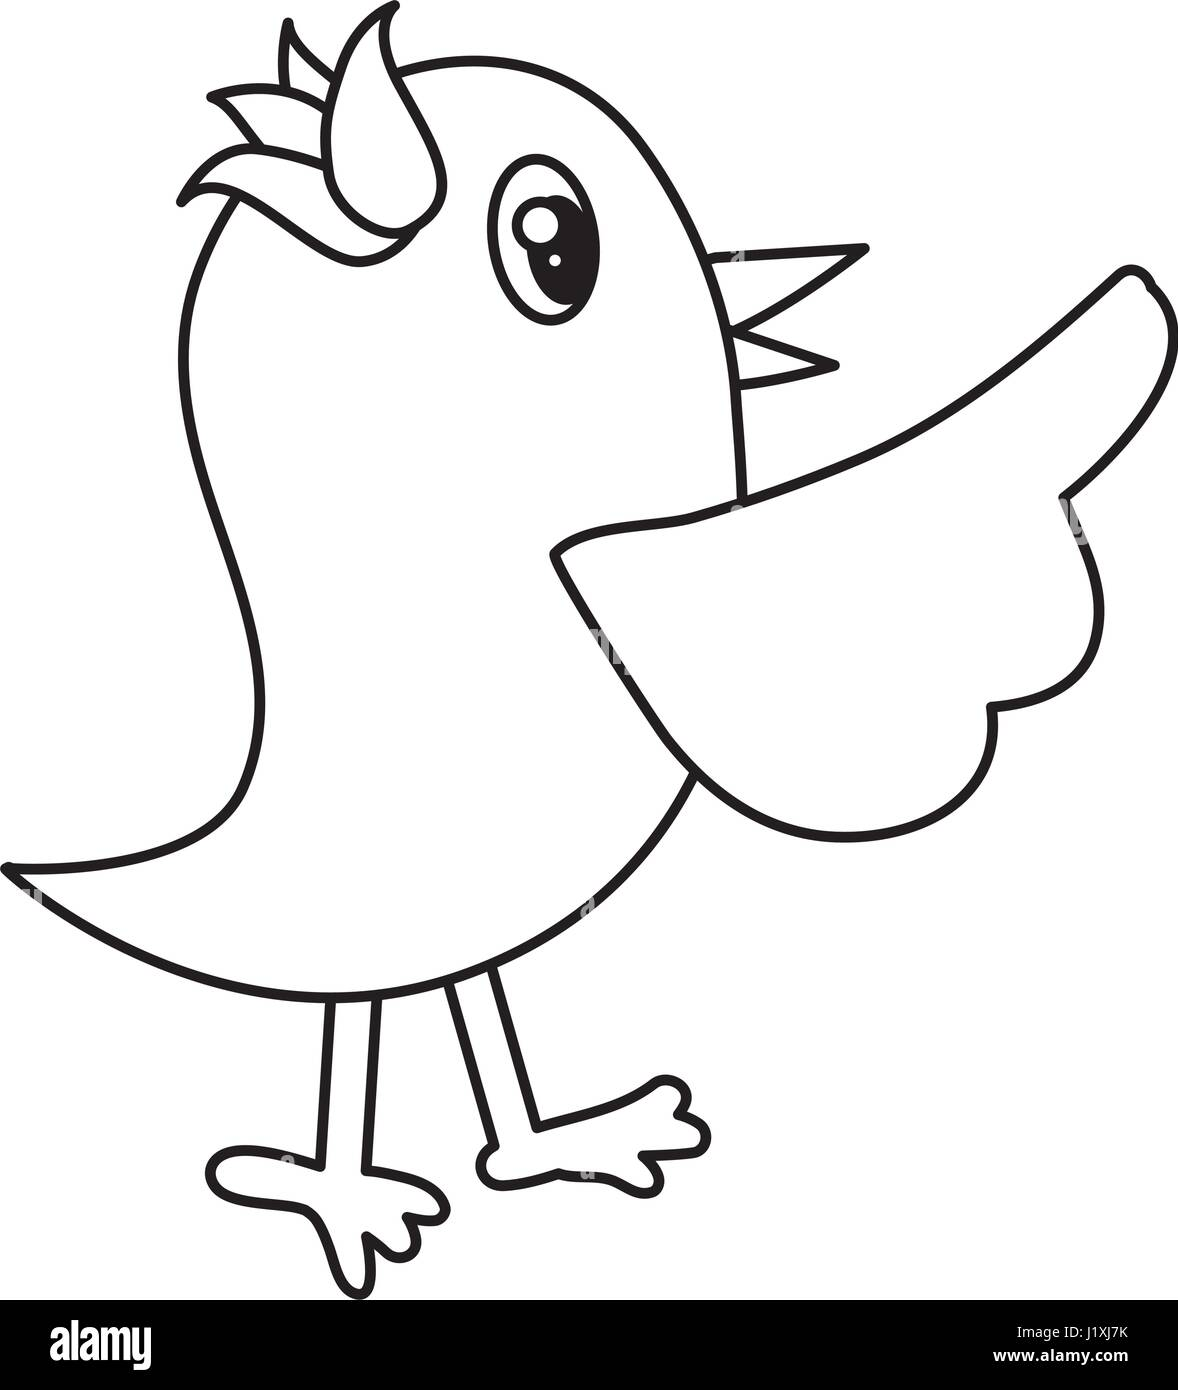 Flying Bird Cartoon Black And White Stock Photos Images Alamy